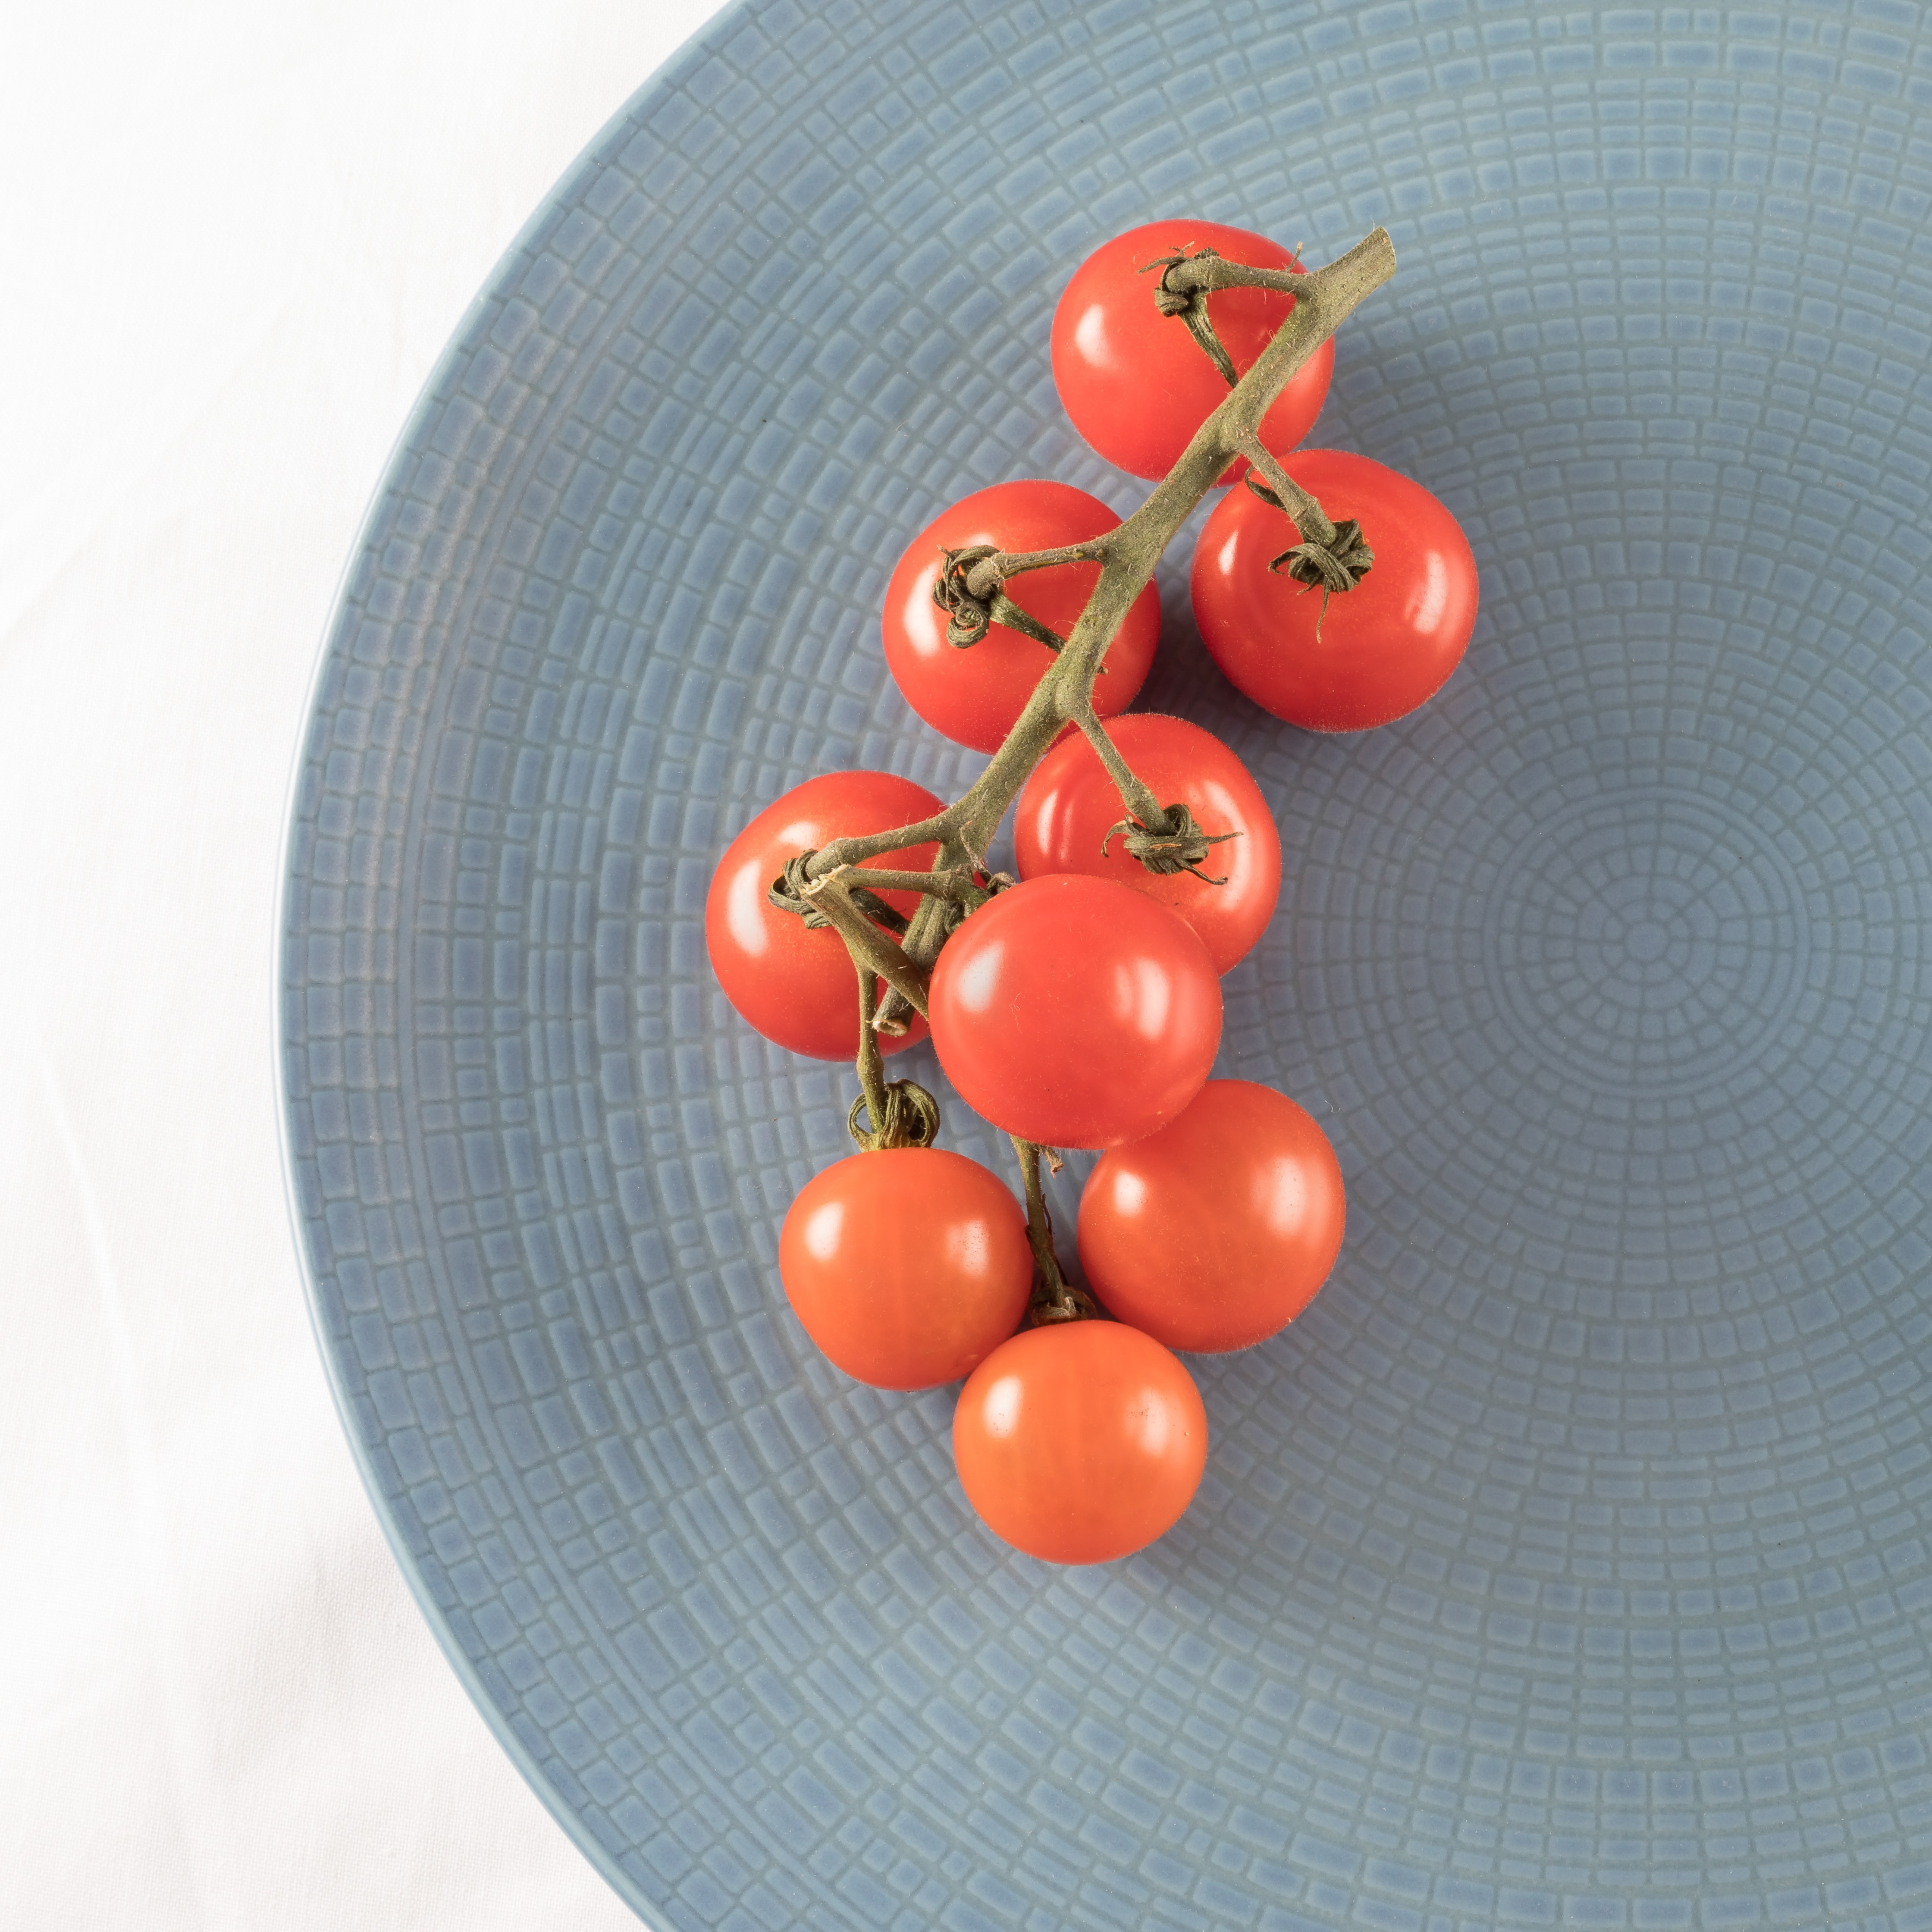 top view photography of tomatoes on plate